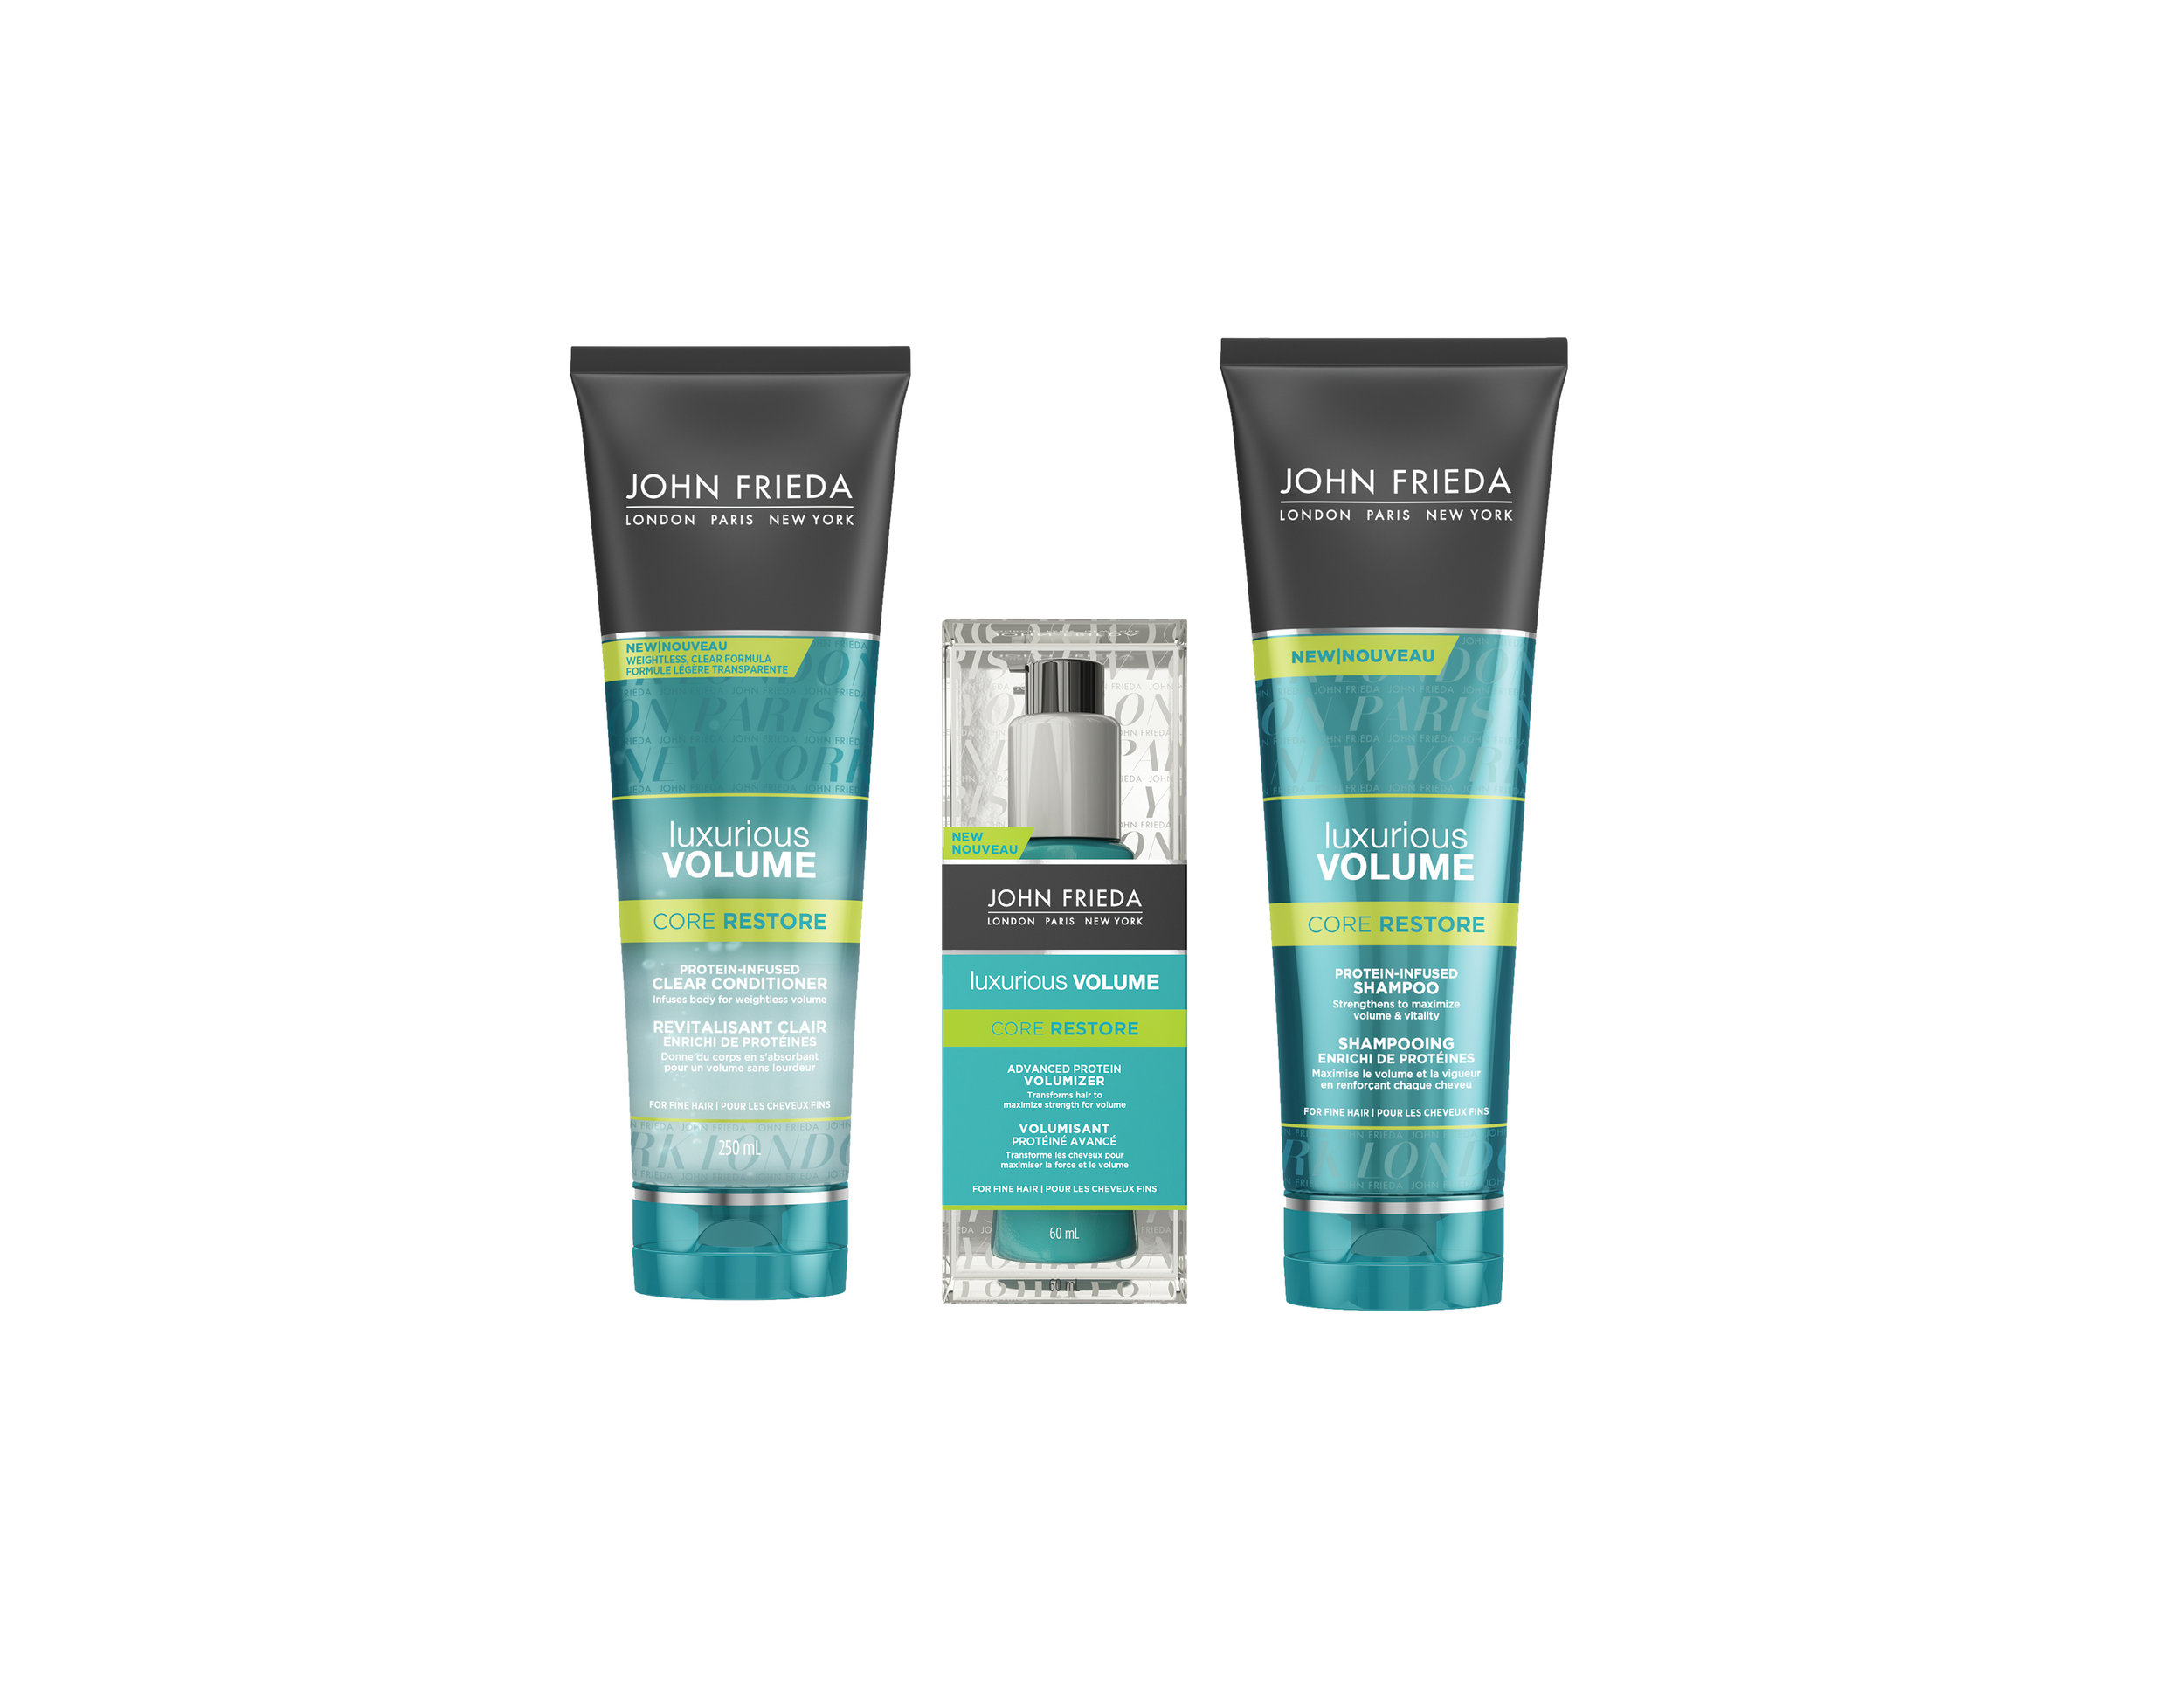 John Frieda Luxurious Volume Core Restore Collection. $10.97 - $12.99. Available at Mass retailers.